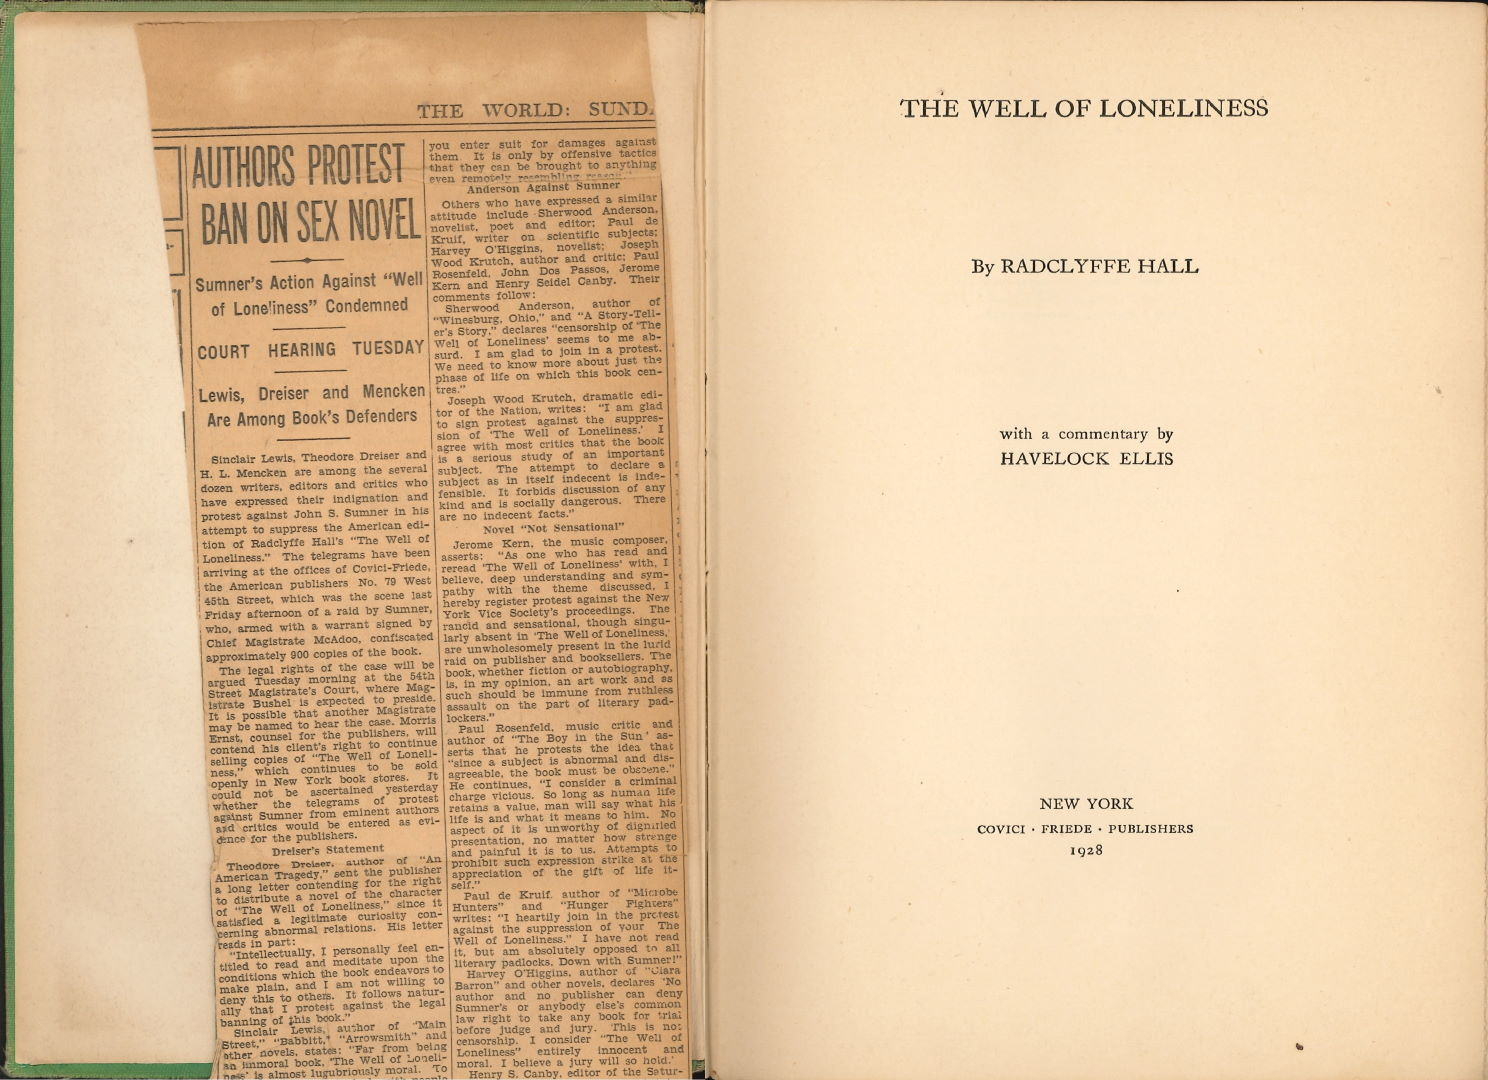 The well of loneliness / Radclyffe Hall (New York: Covici Friede Publishers, 1928)